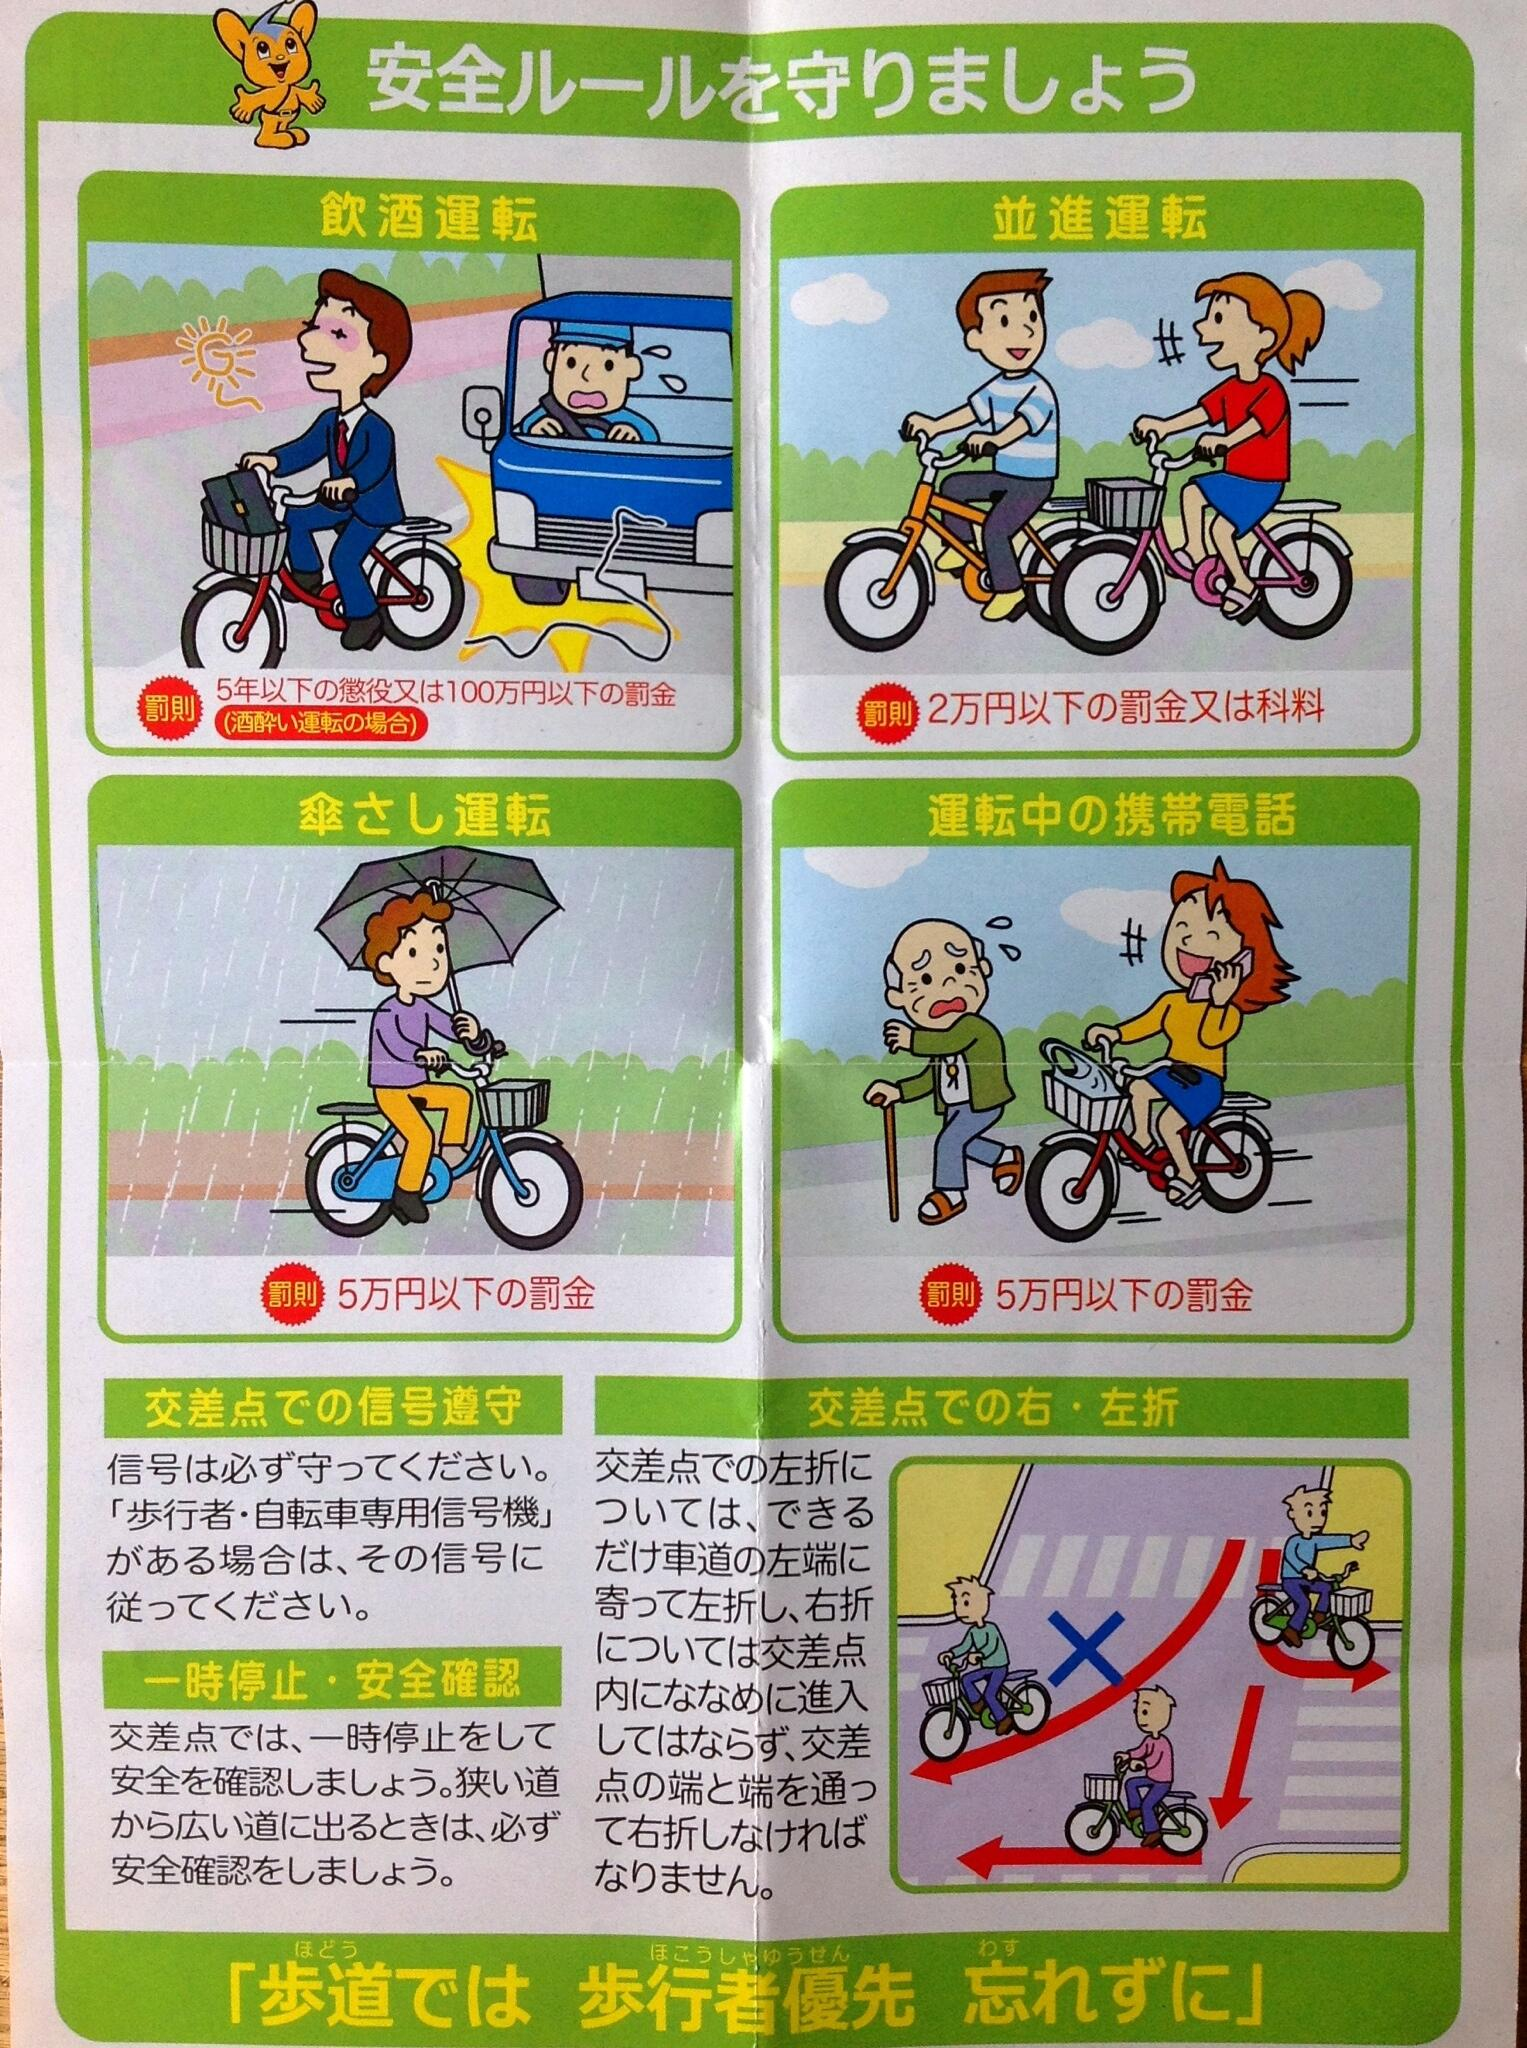 RT @tokyobybike: Bicycle safety leaflet handed out to cyclists in Tokyo yesterday (back) http://t.co/e0SP3SqISE